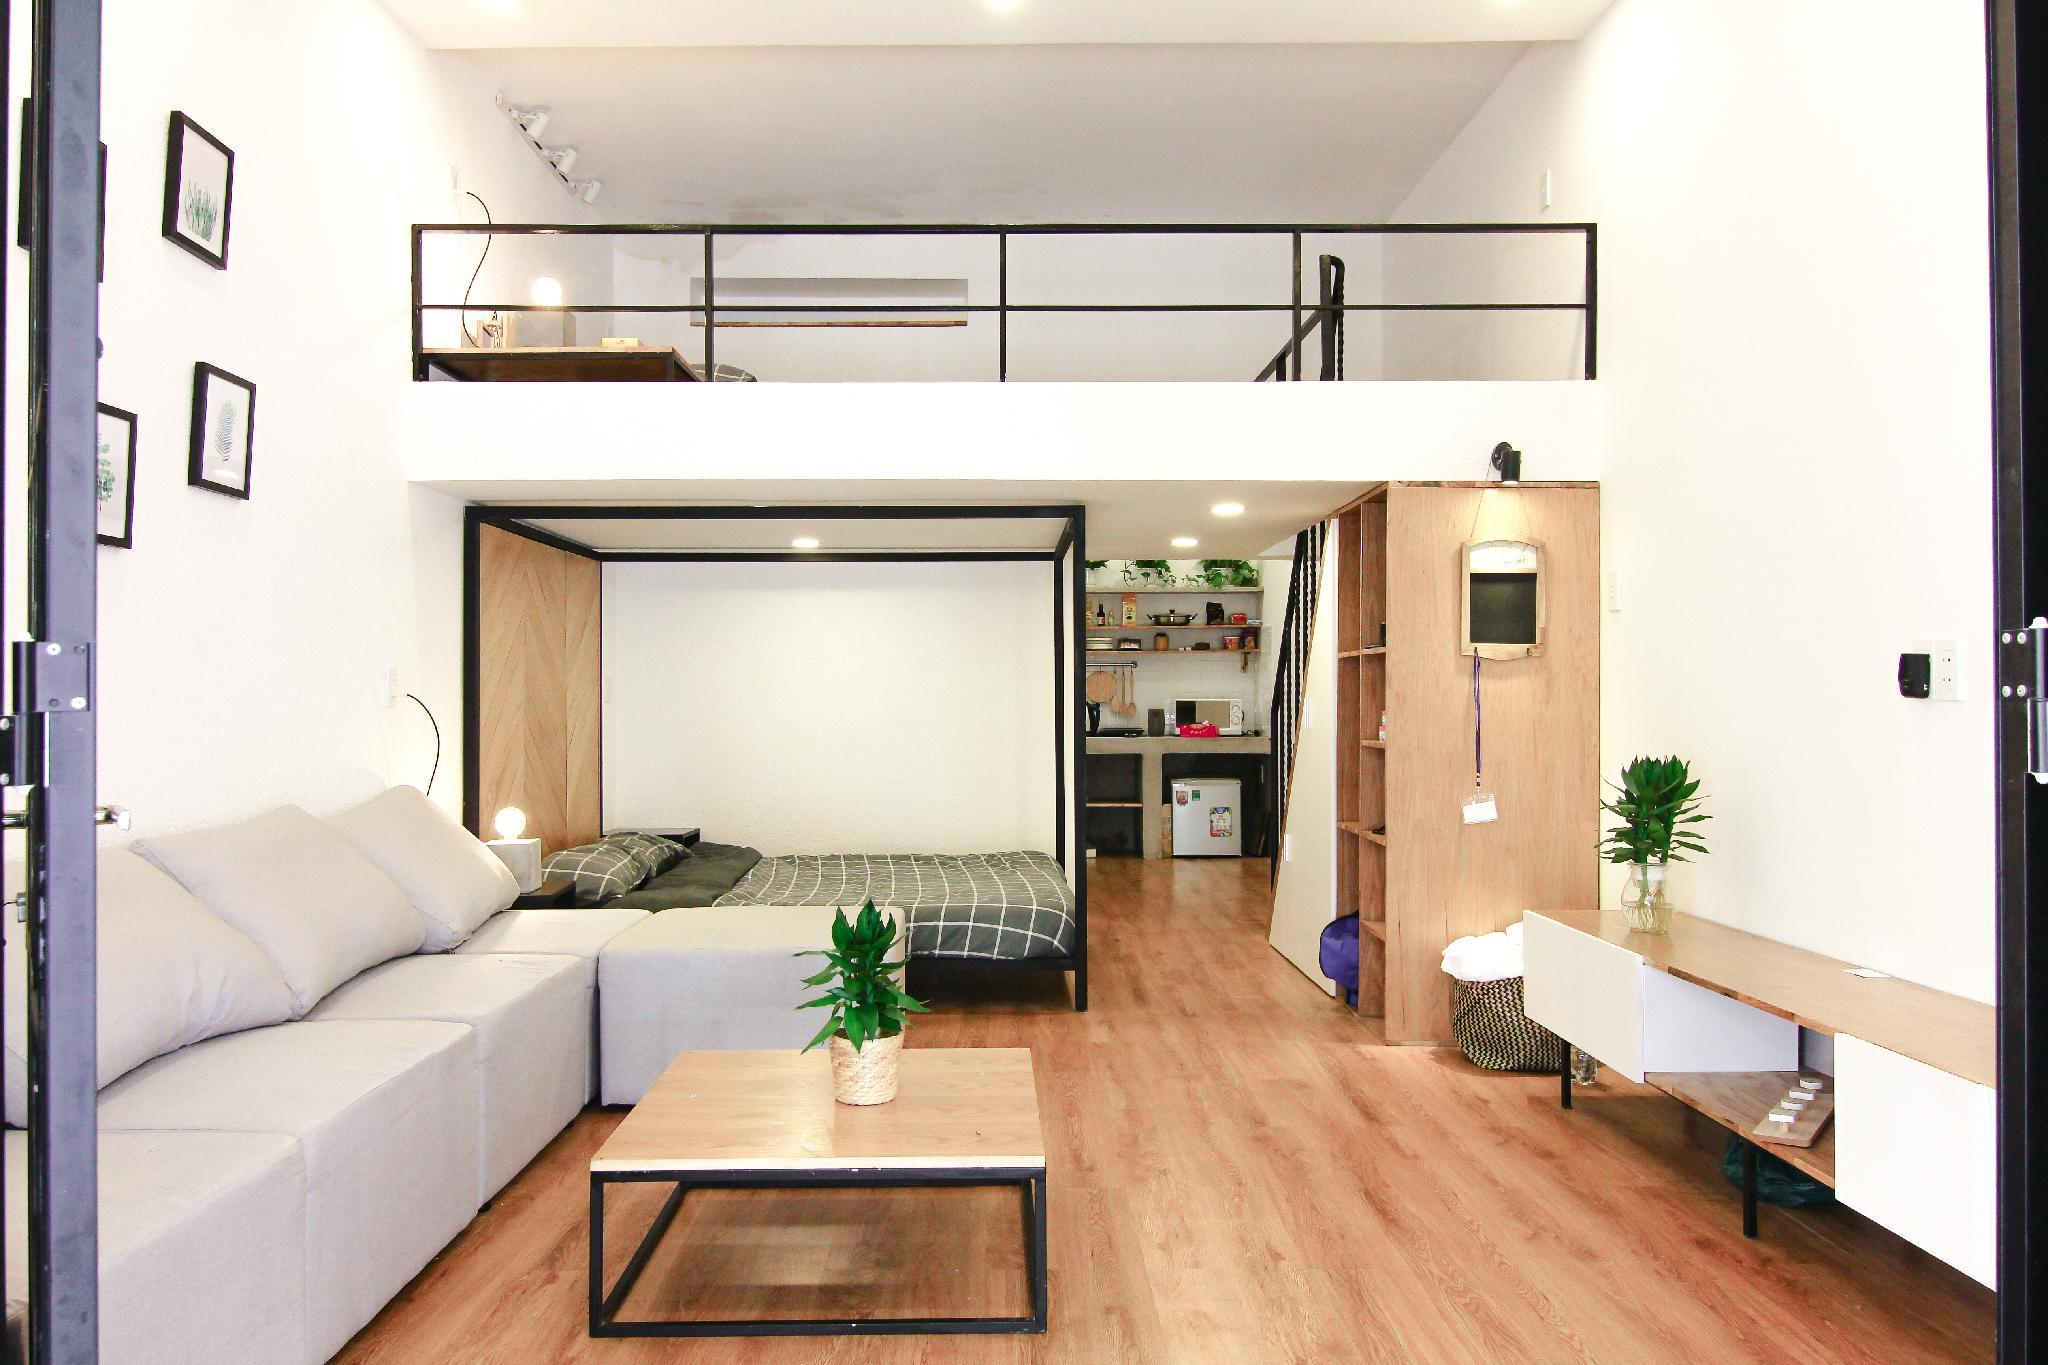 400m To Ben Thanh  Cozy Loft For Friends+breakfast